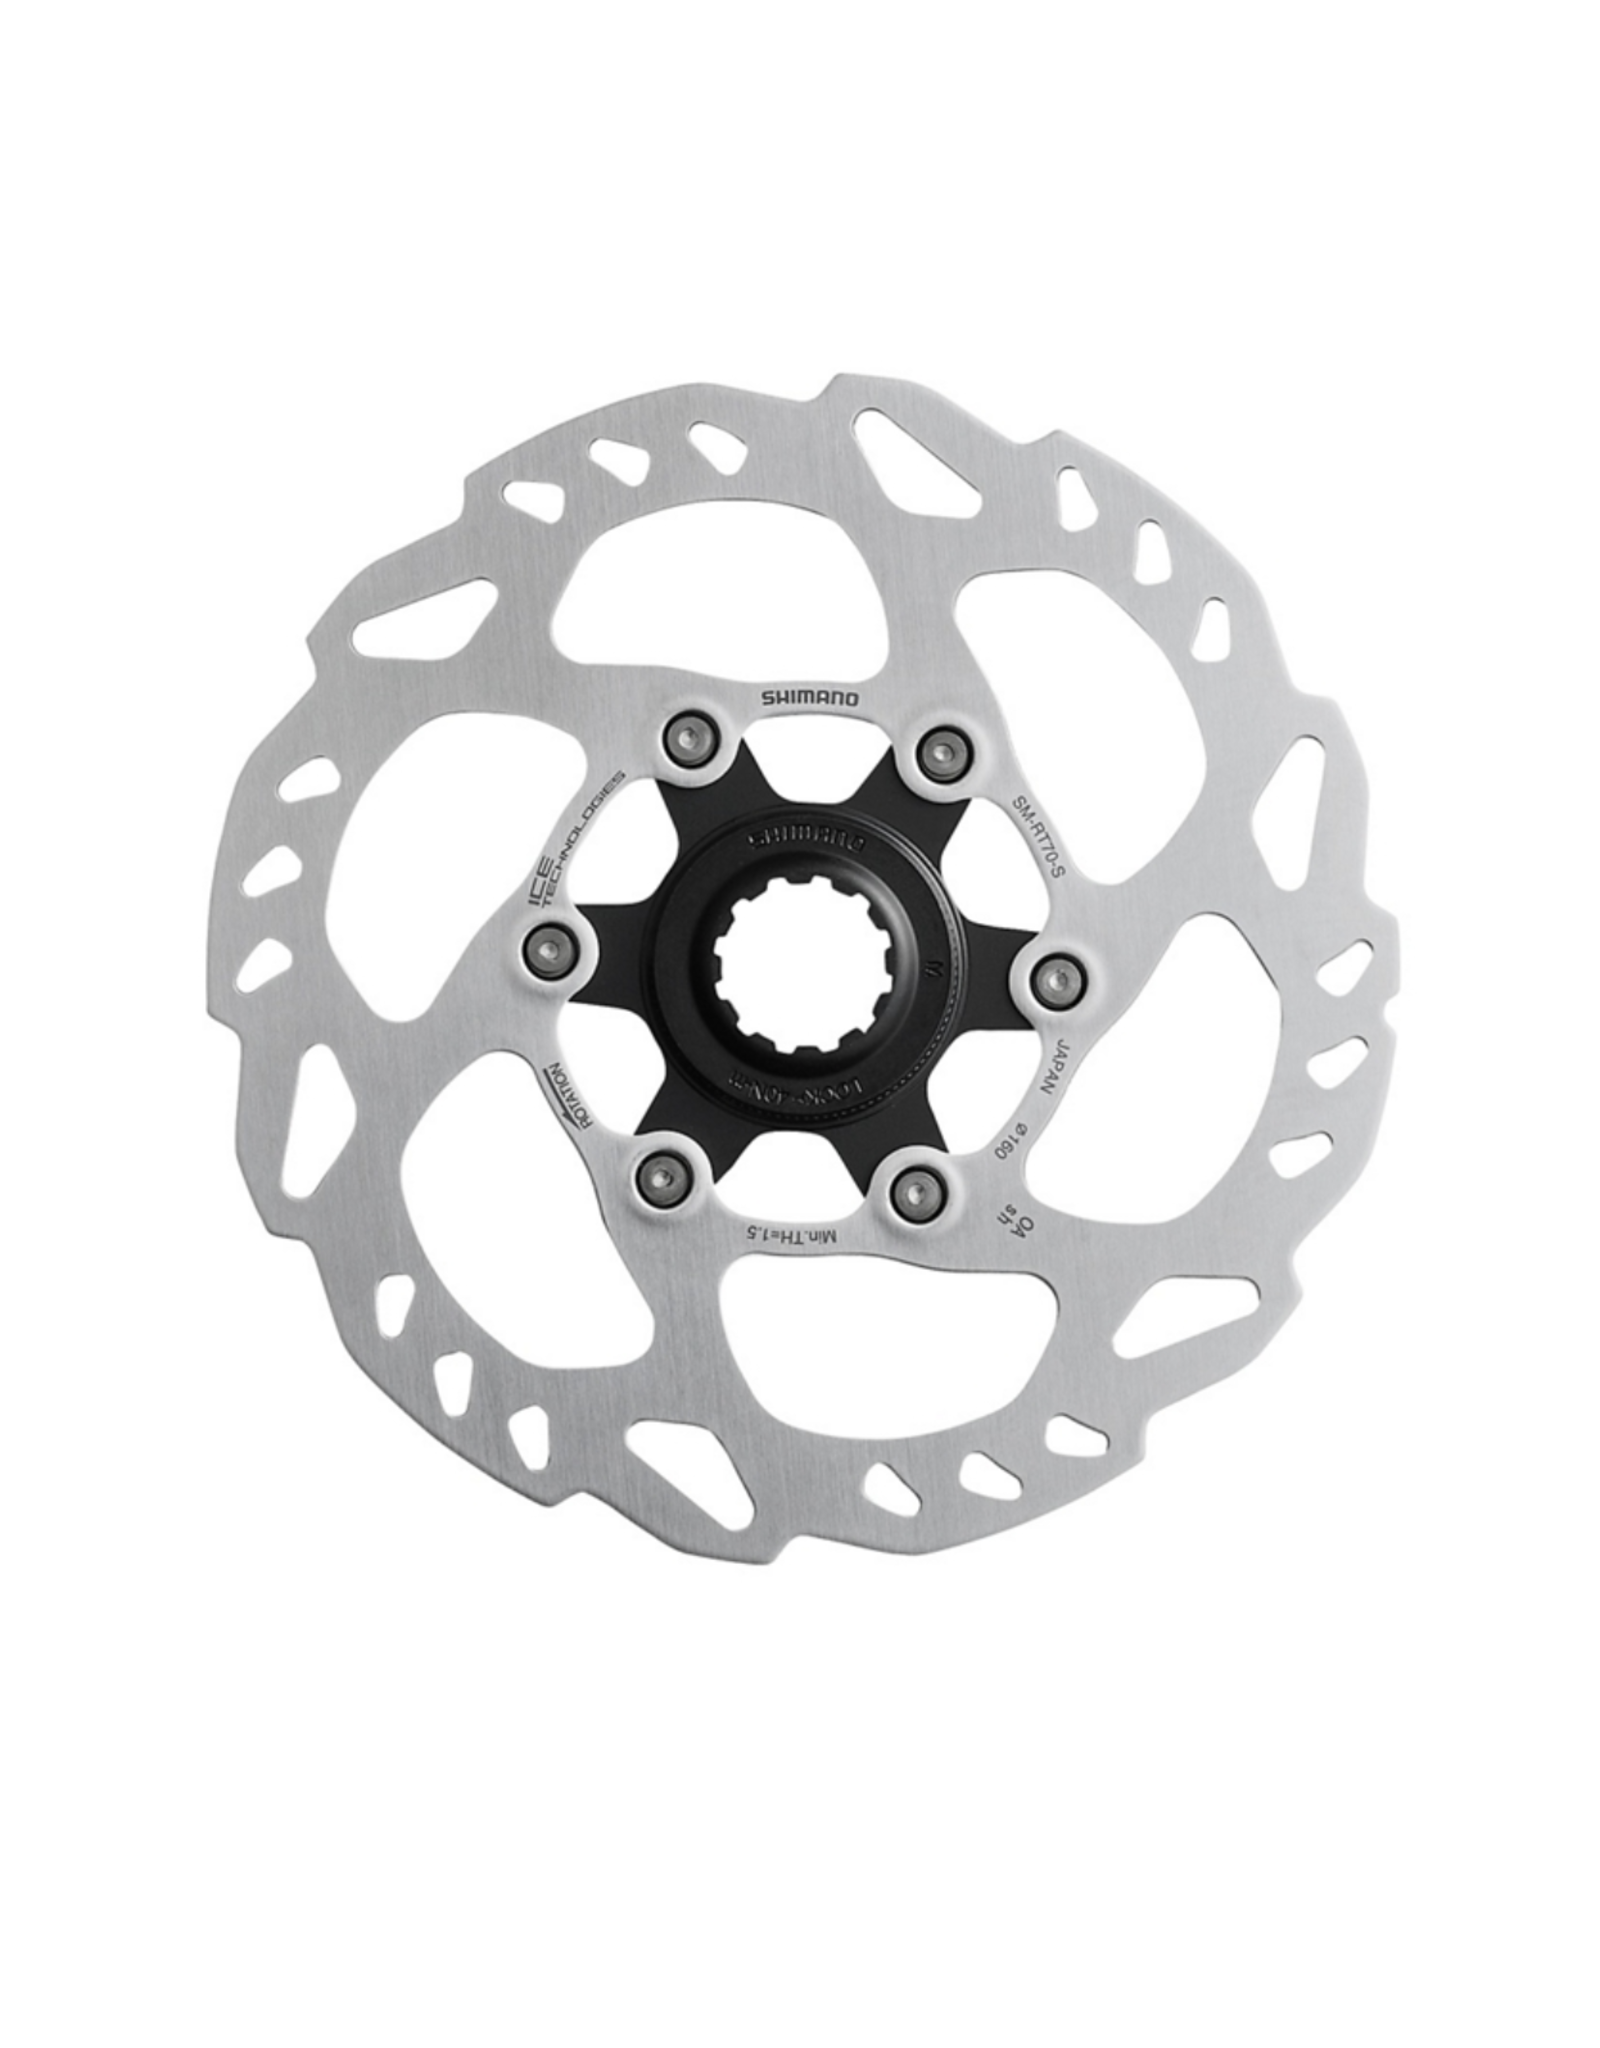 SHIMANO ROTOR FOR DISC BRAKE, SM-RT70, M 180MM, W/LOCK RING(